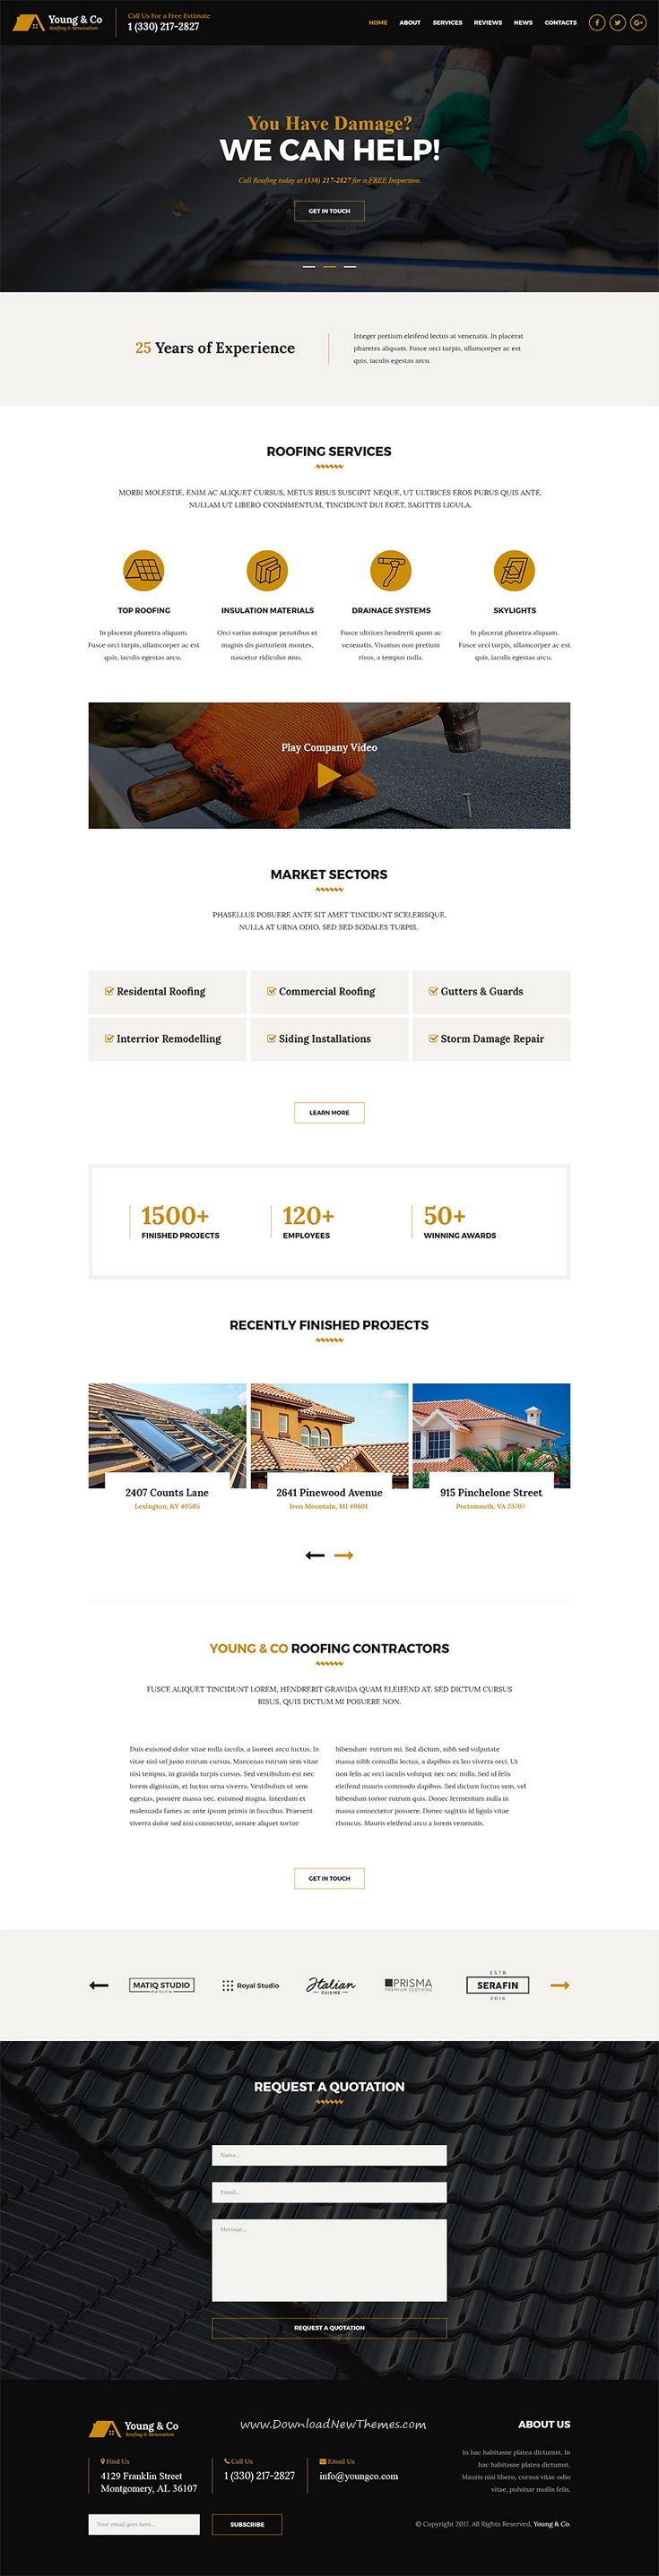 Young Co Family Roofing Service Pinterest Simple Website